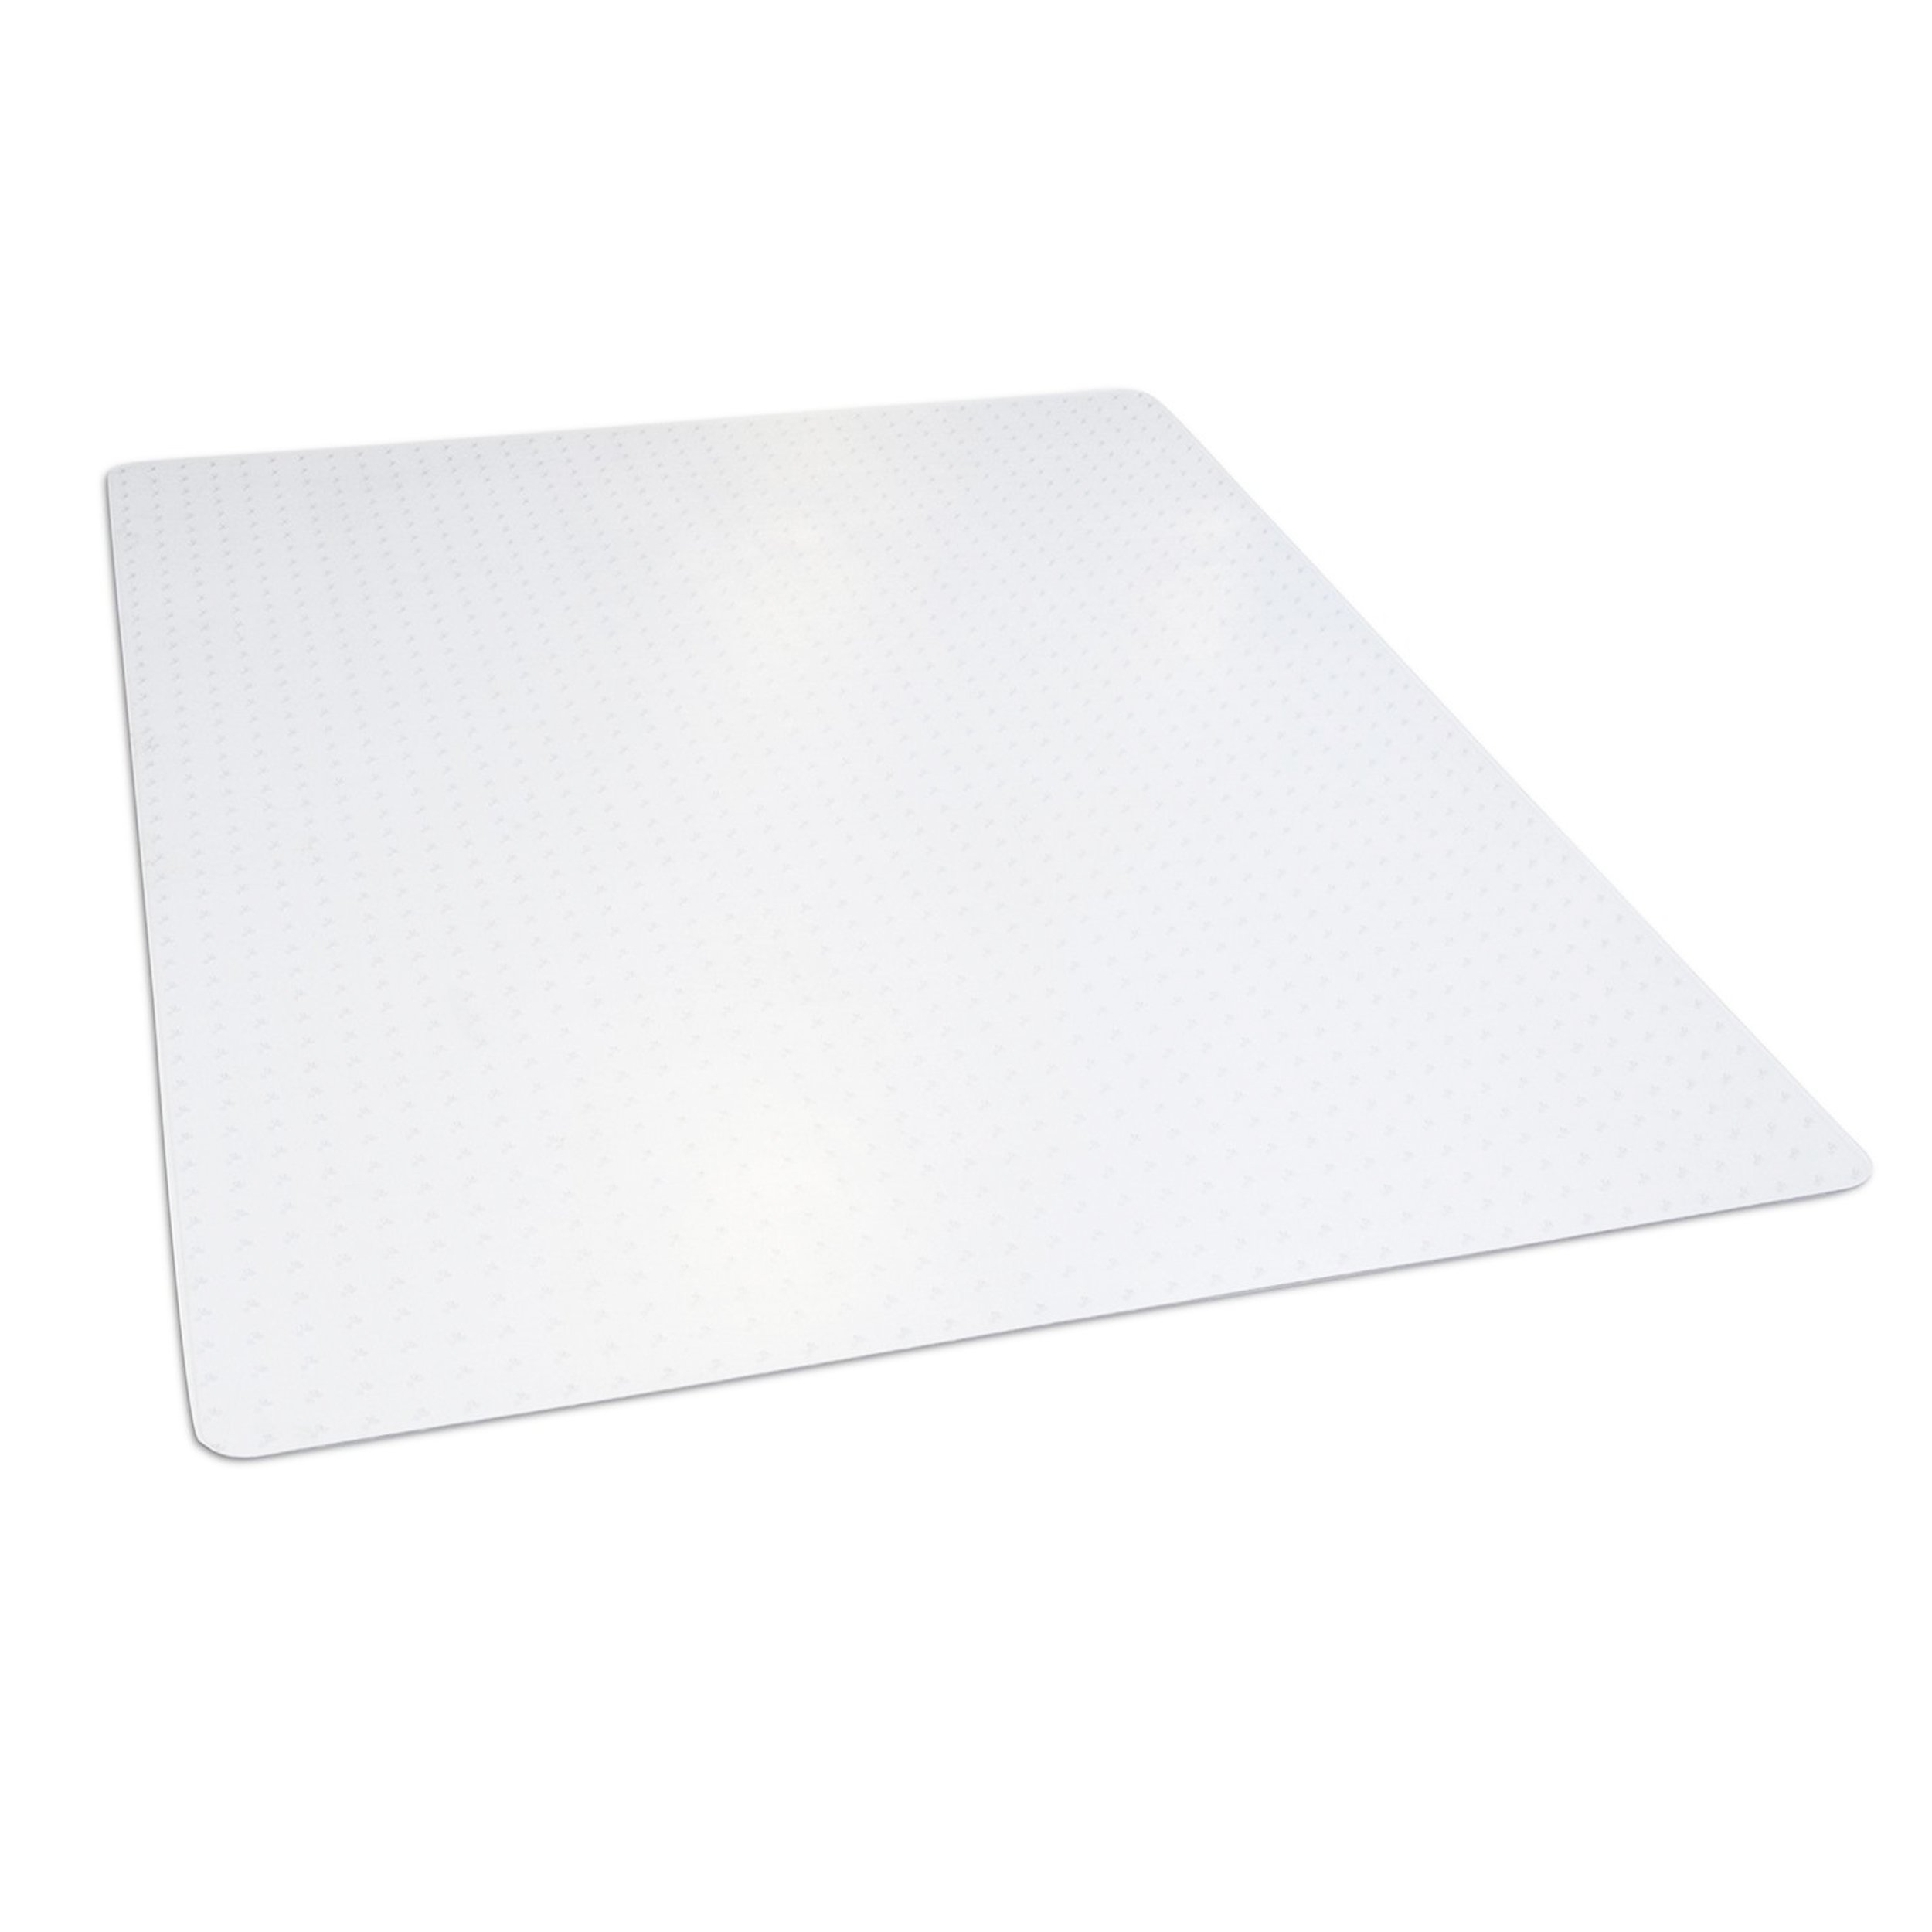 Dimex 46''x 60'' Clear Rectangle Office Chair Mat For Low And Medium Pile Carpet, Made In The USA, BPA And Phthalate Free, C532001J by Dimex